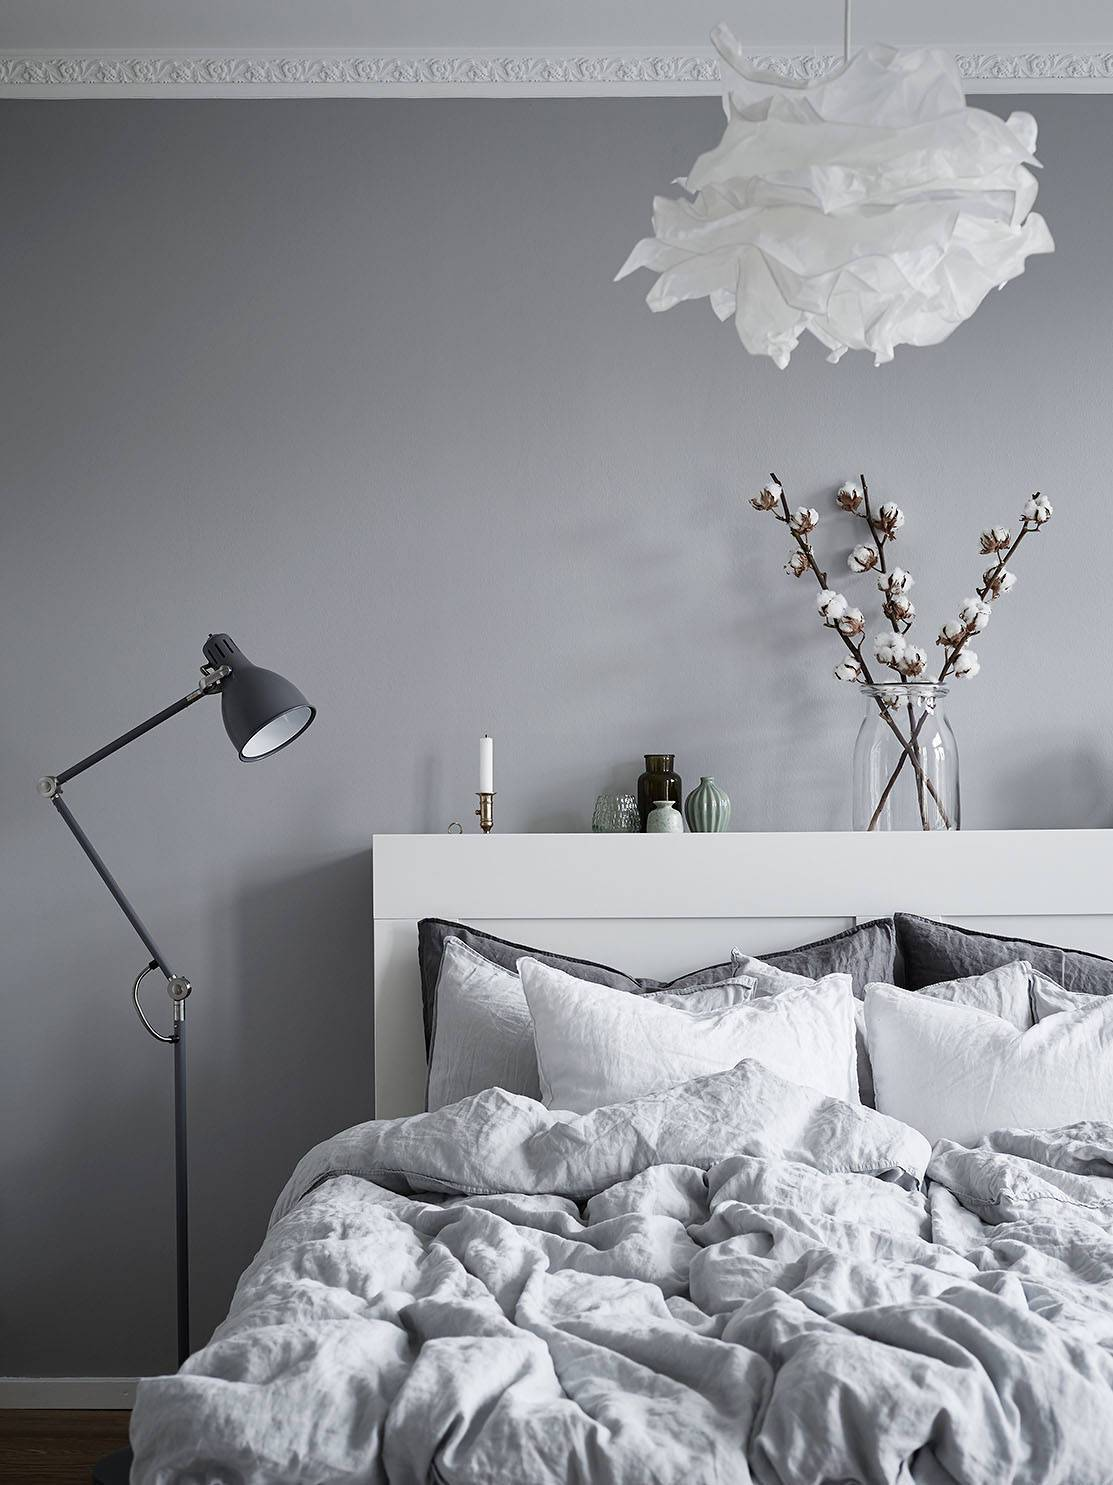 Dress Up Your Scandinavian Bedroom with These Modern Floor Lamps 4 modern floor lamps Dress Up Your Scandinavian Bedroom with These Modern Floor Lamps Dress Up Your Scandinavian Bedroom with These Modern Floor Lamps 4